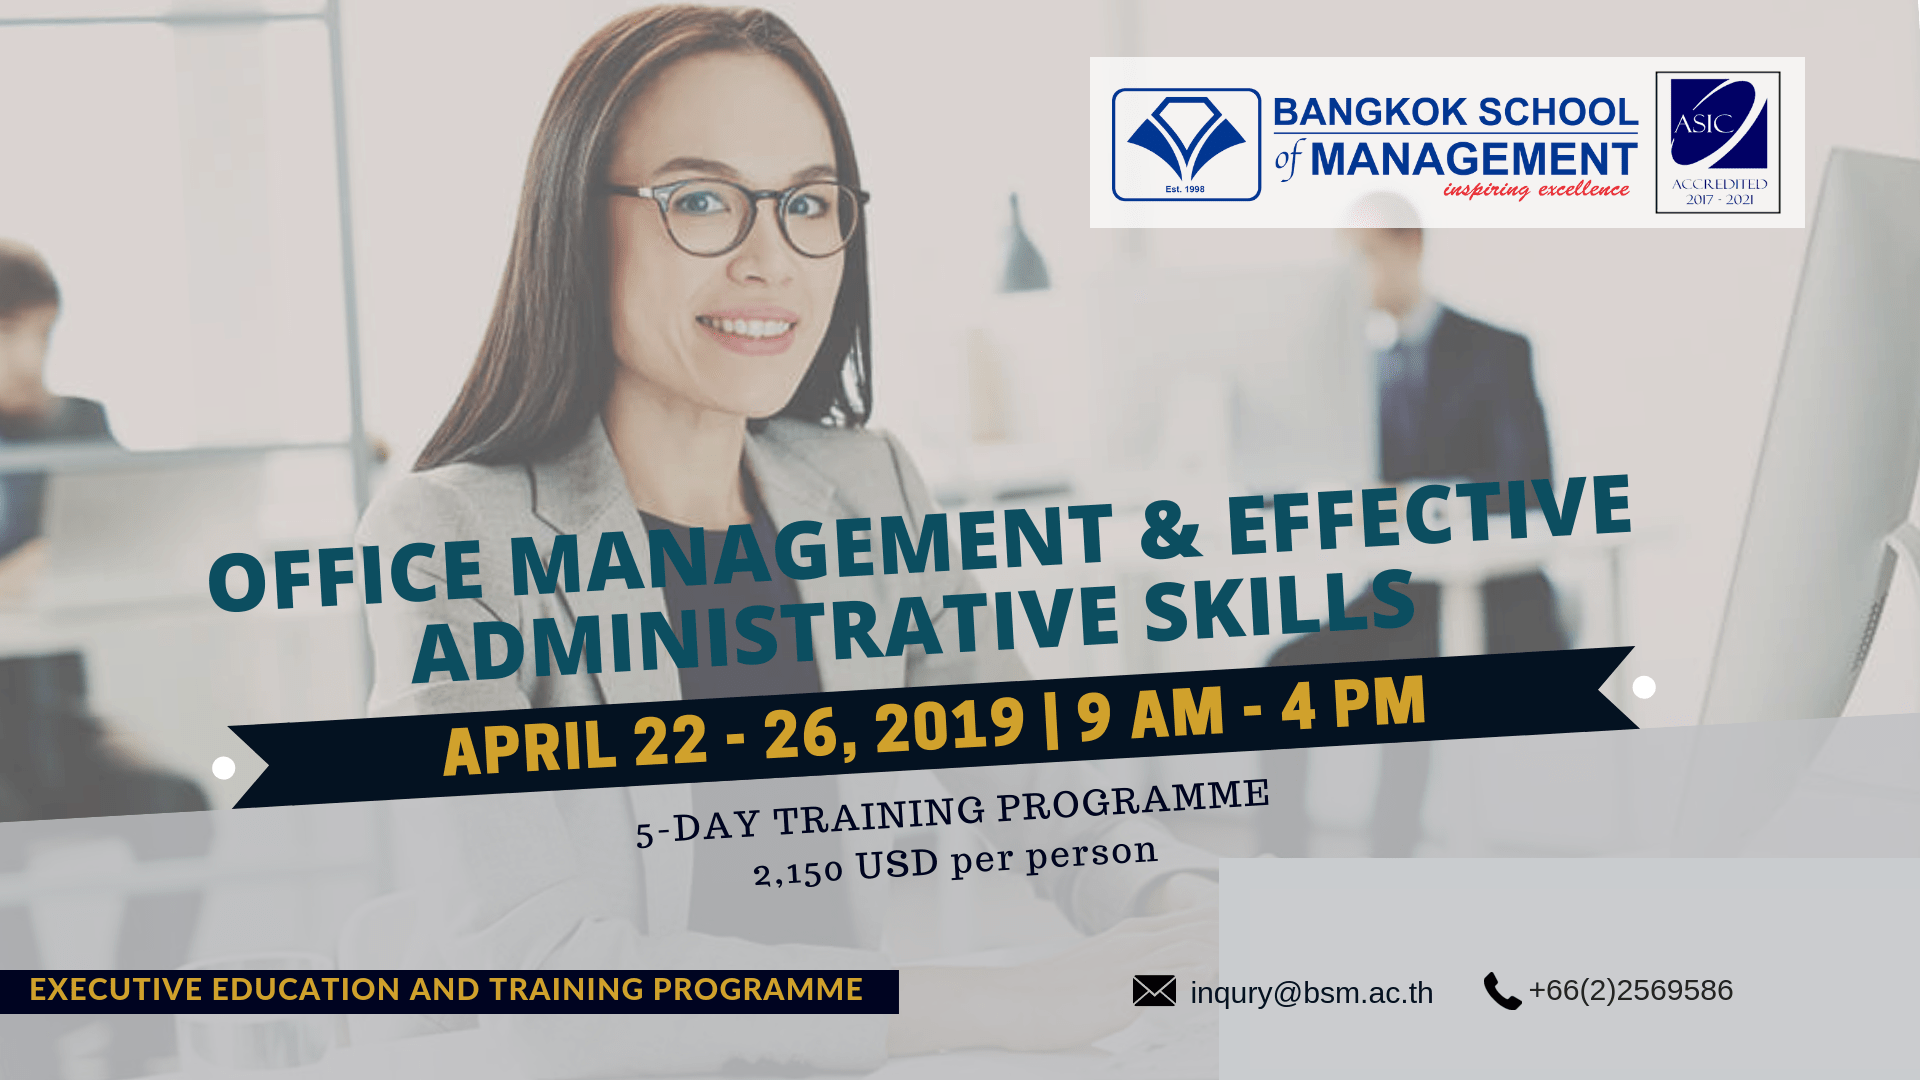 Date: April 22-26, 2019  Office Management & Effective Administrative Skills